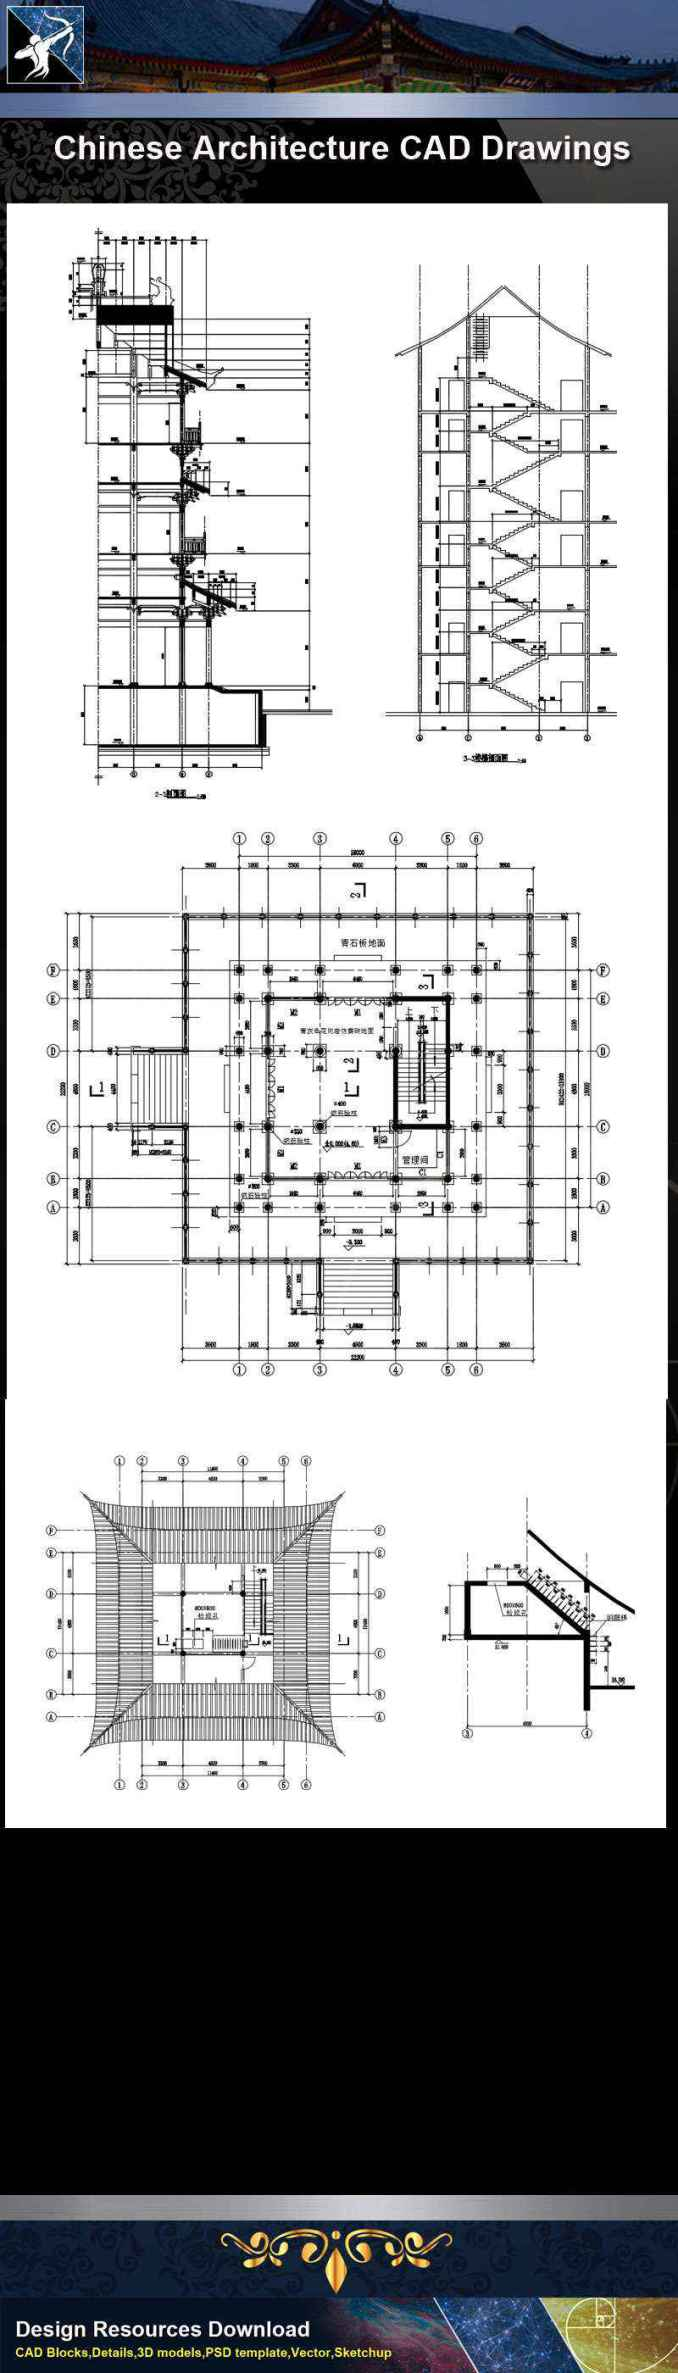 ★【Chinese Architecture CAD Drawings】@Chinese Tower Drawings,CAD Details,Elevation